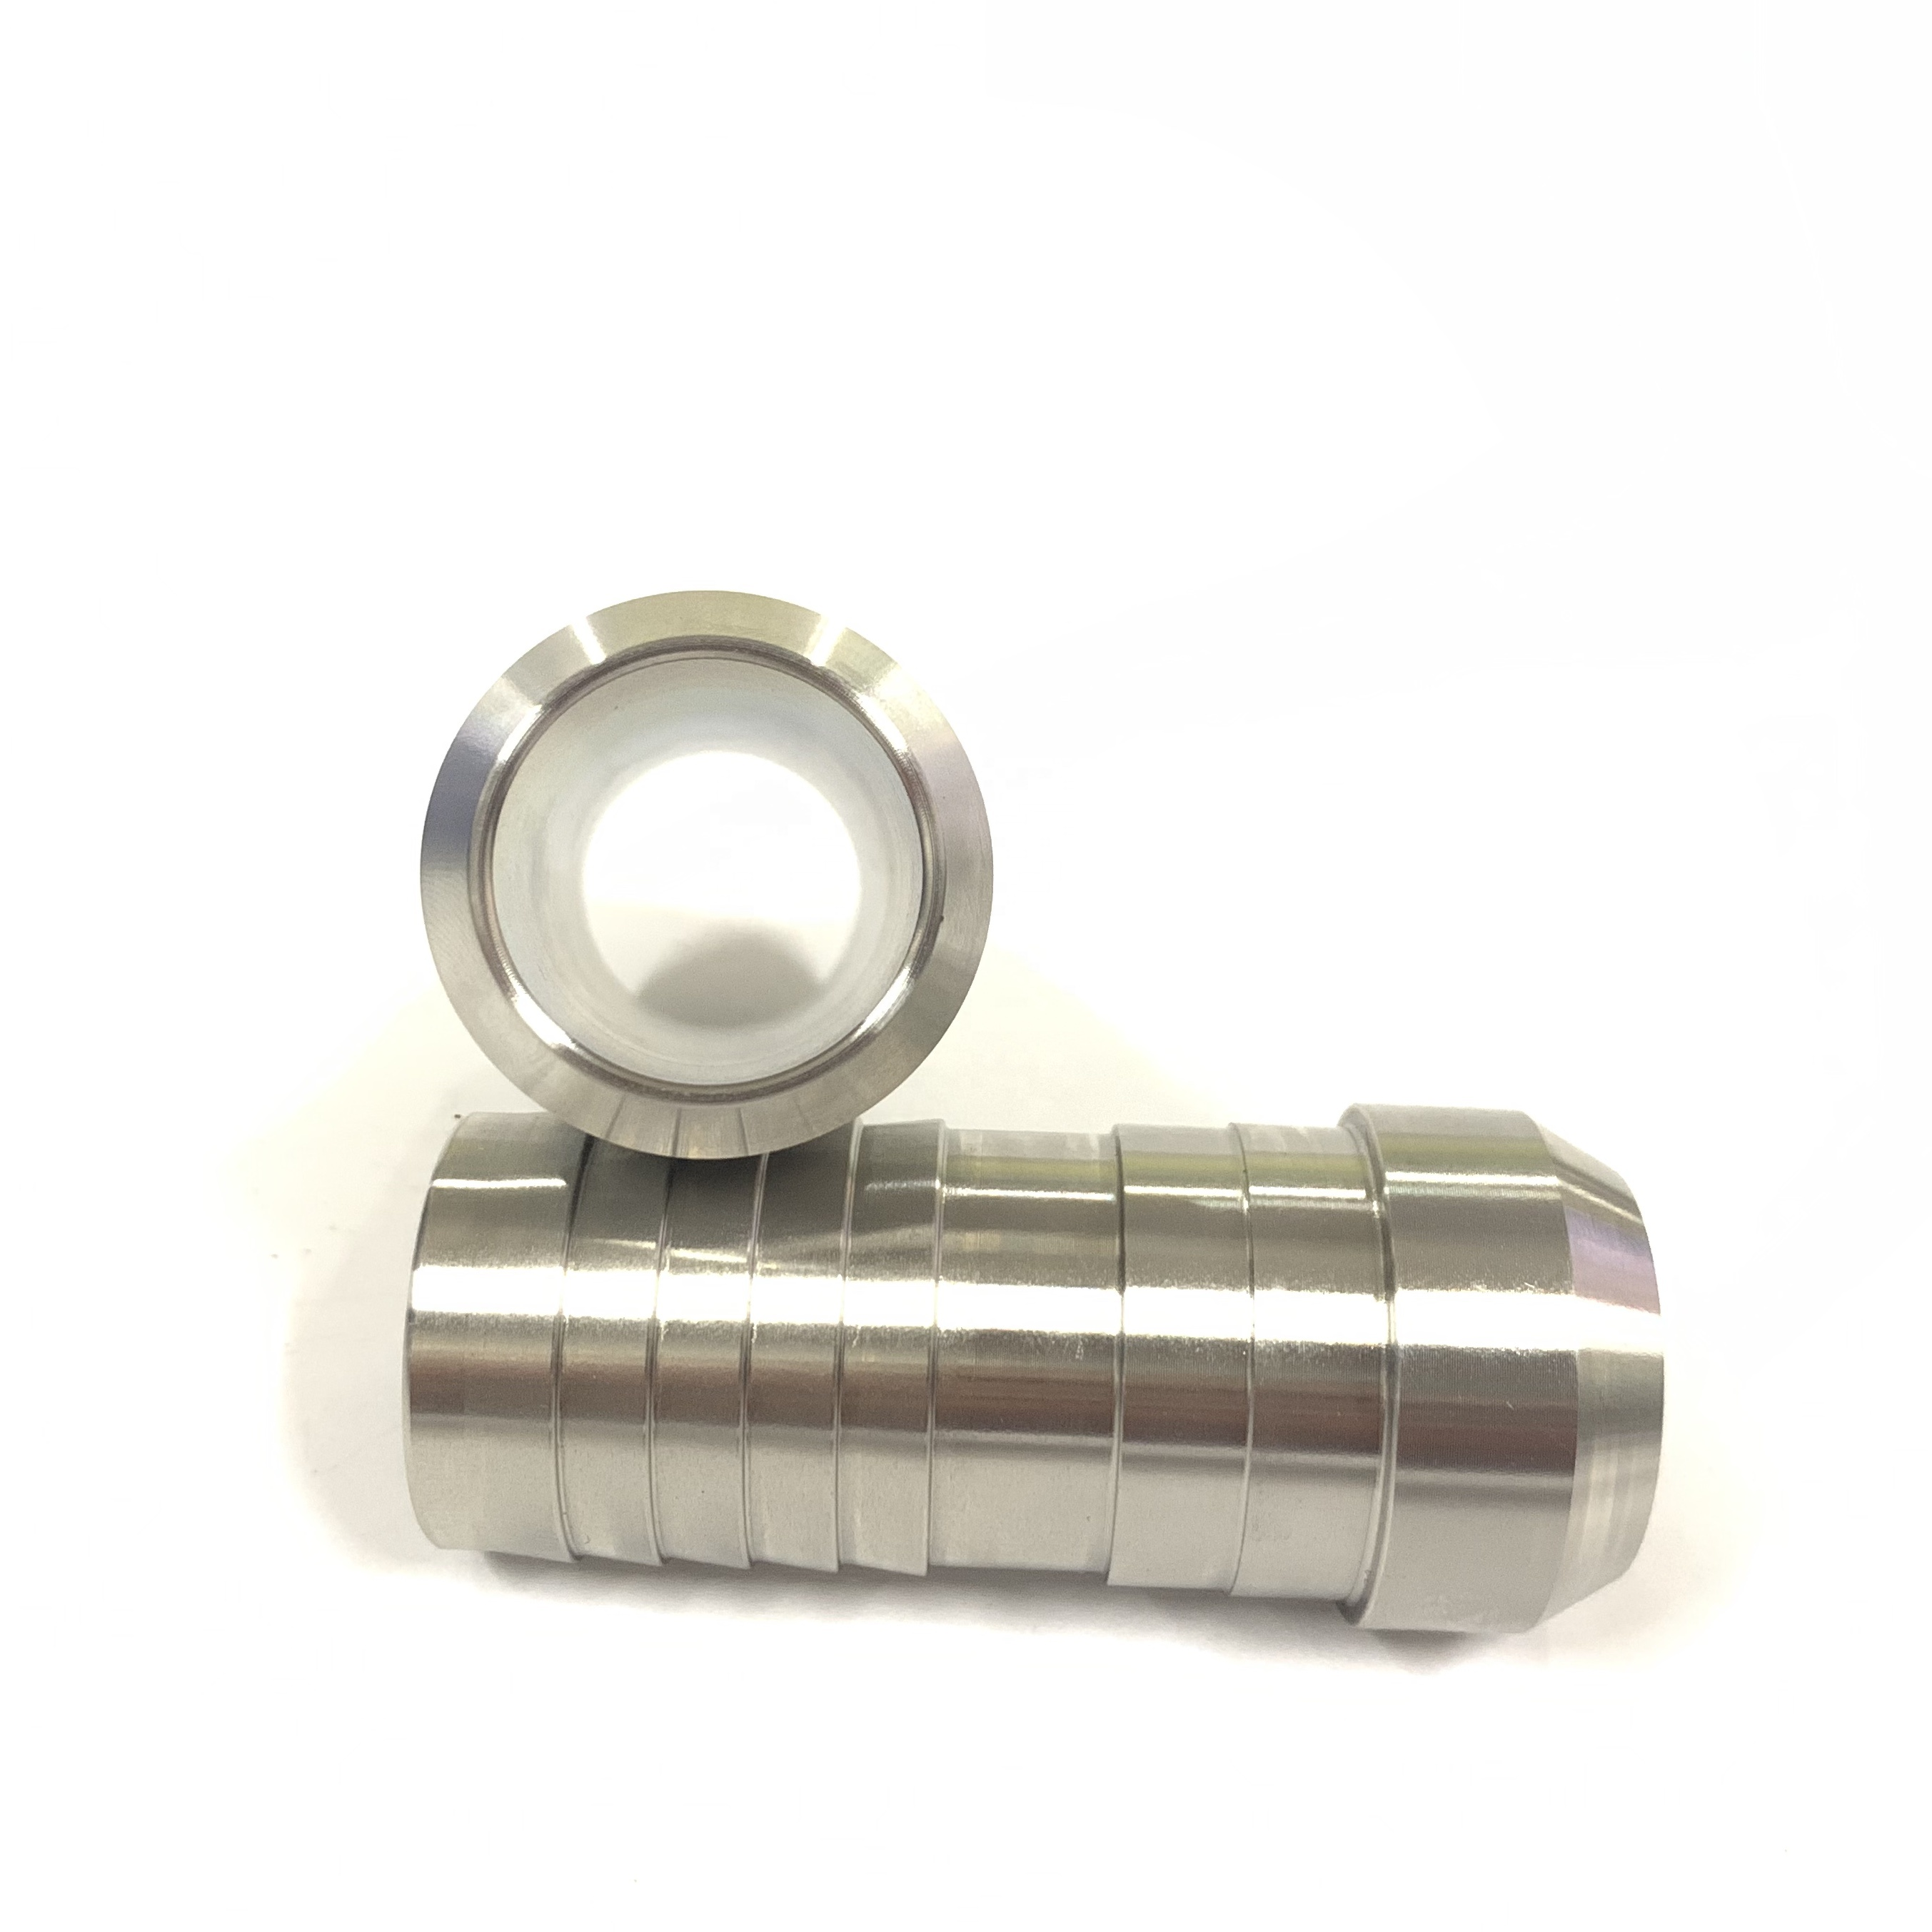 China factory supply High quality stainless steel hydraulic hose connectors end fitting